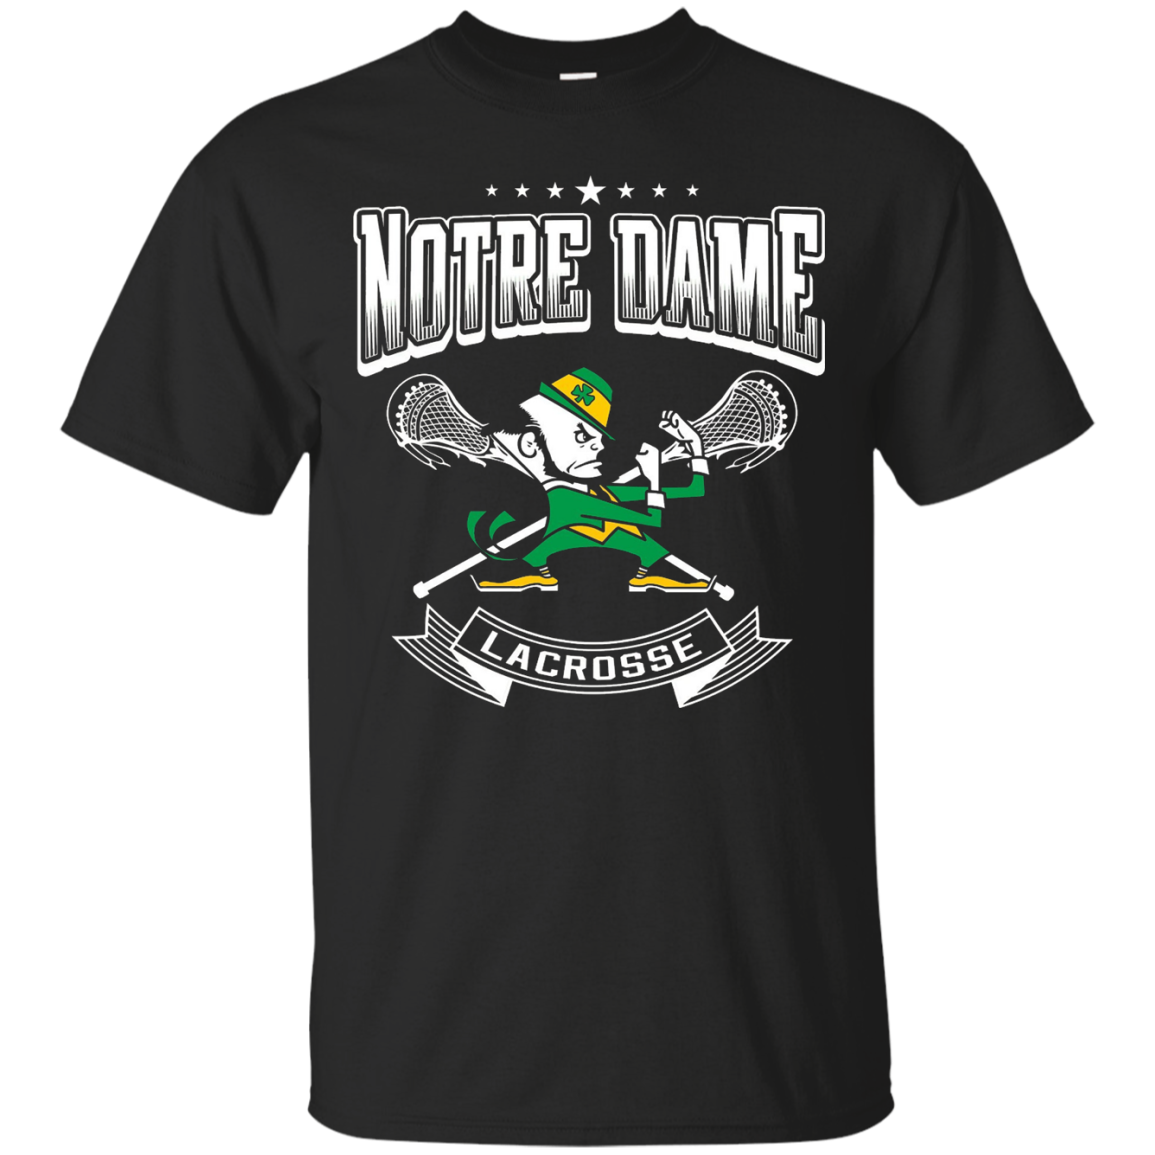 Fighting Irish Shirt - Irish Shirt - Notre Dame Lacrosse